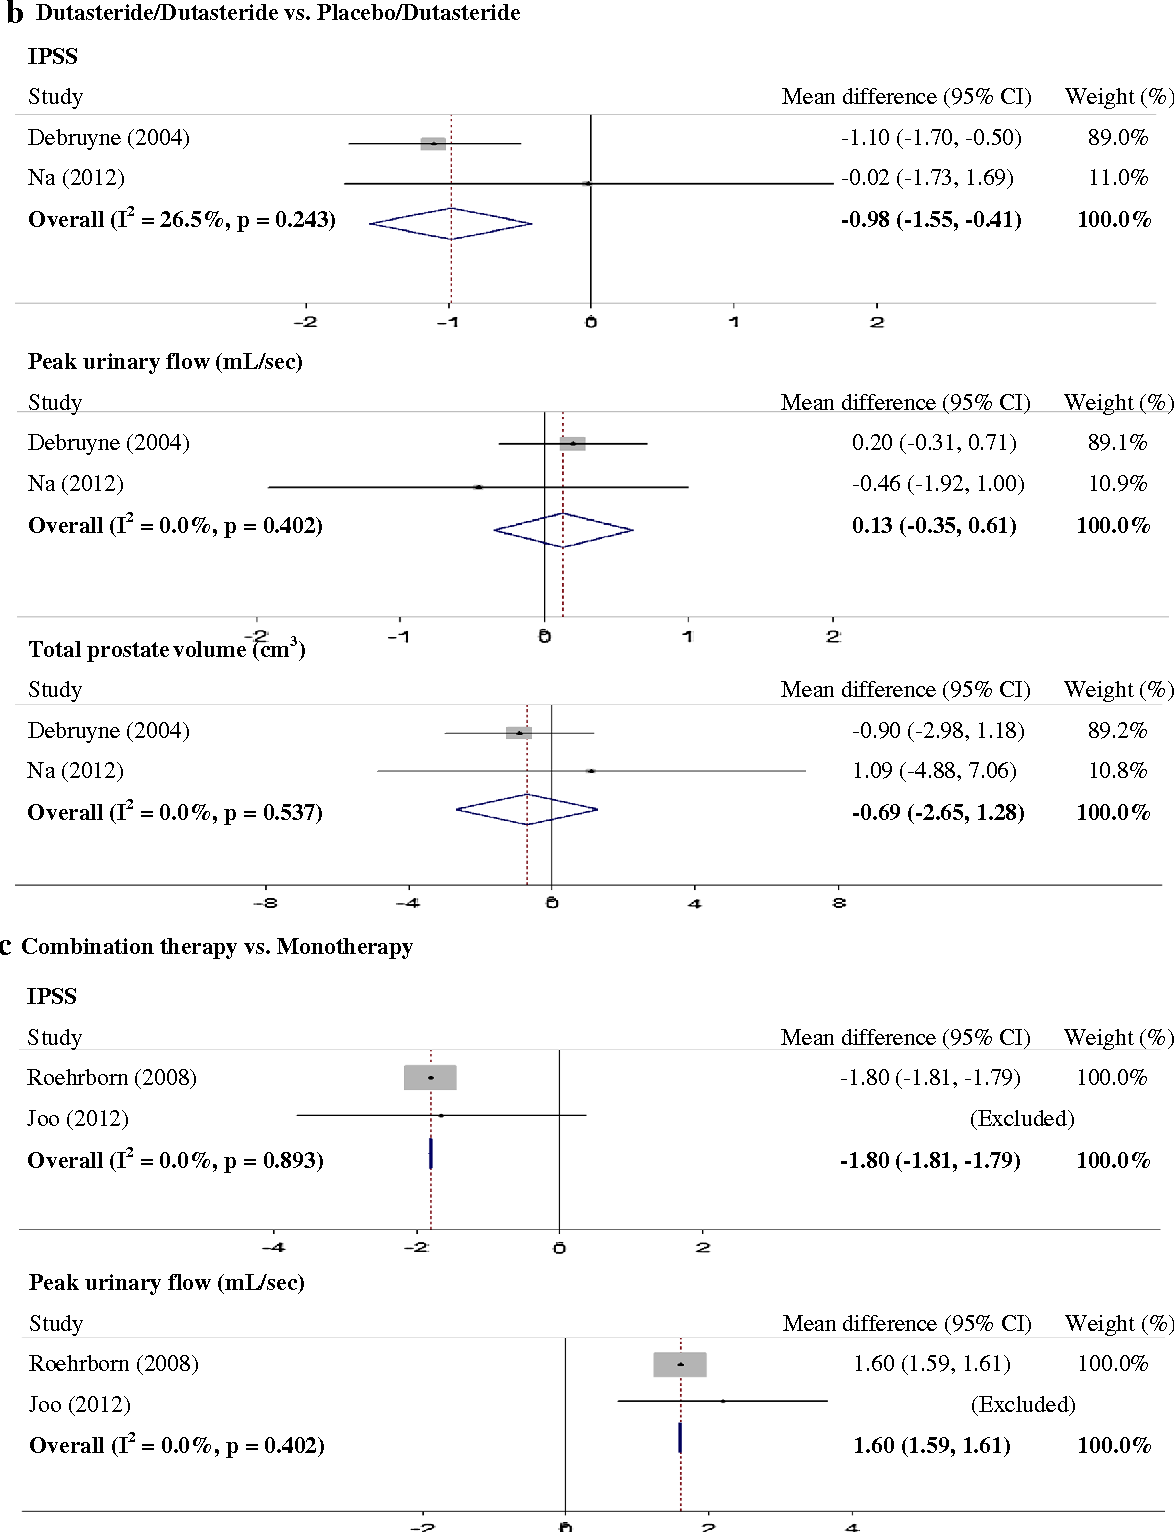 Efficacy And Safety Of Dutasteride For The Treatment Of Symptomatic Benign Prostatic Hyperplasia Bph A Systematic Review And Meta Analysis Semantic Scholar